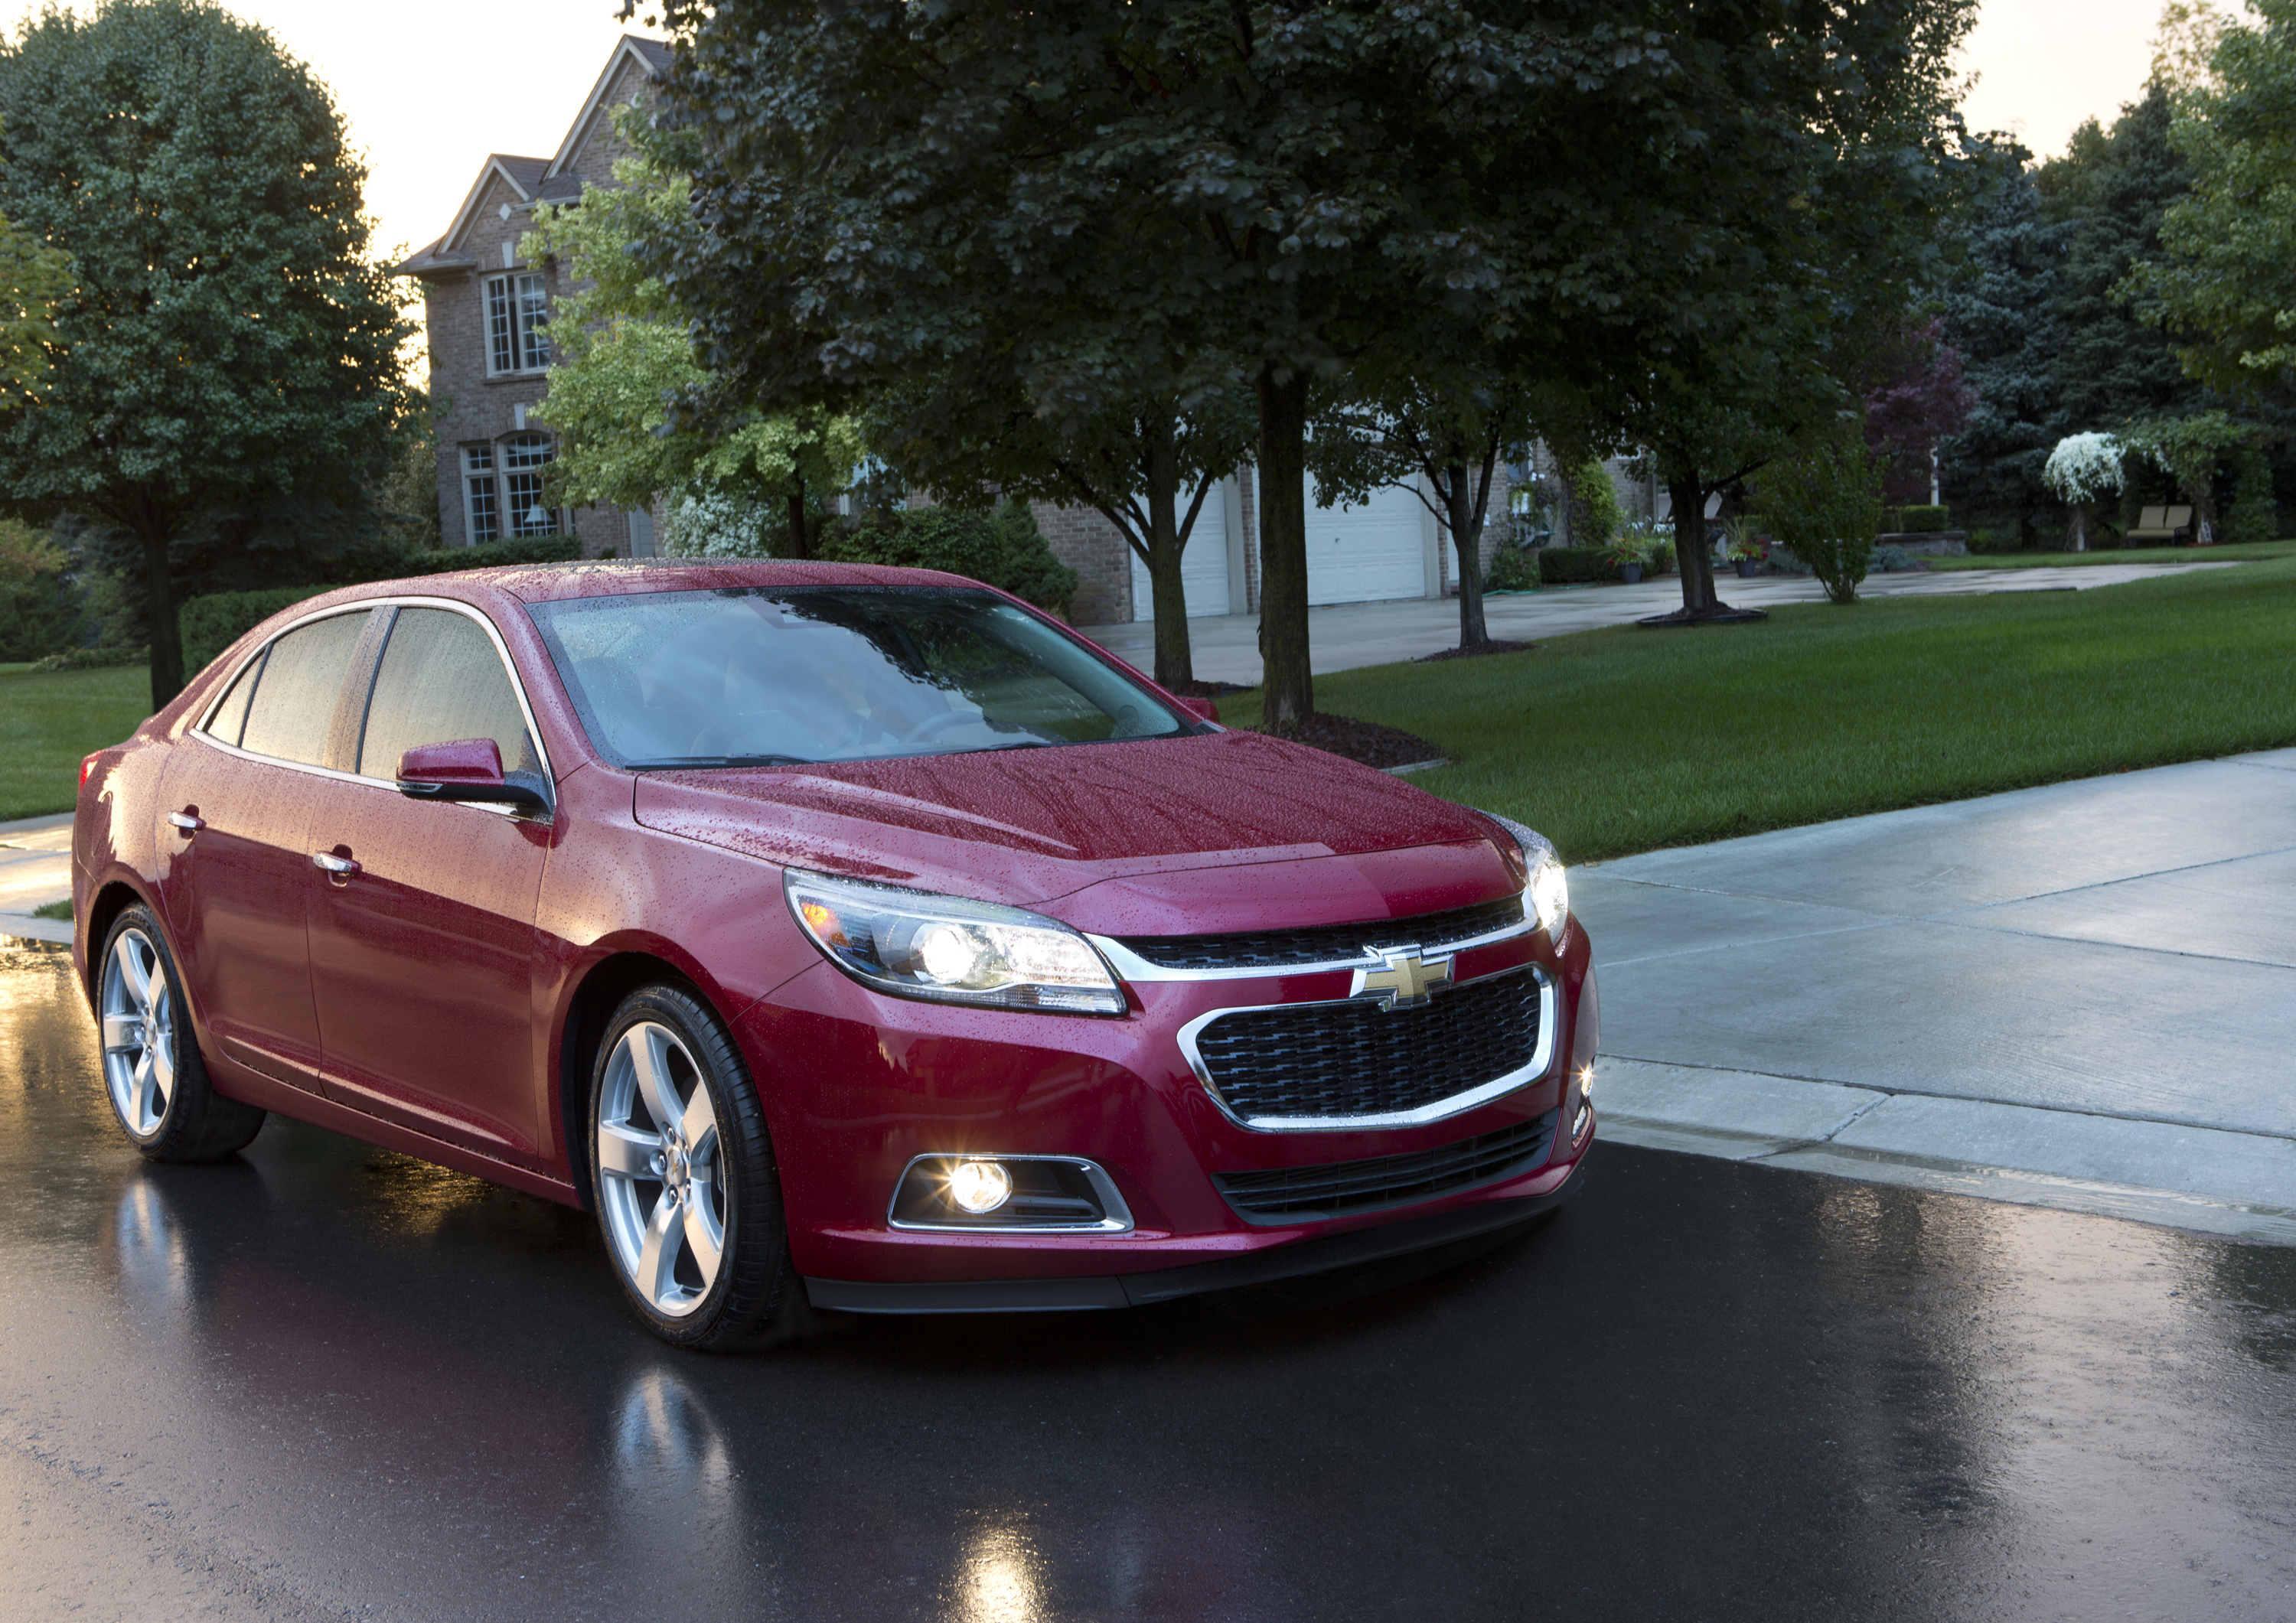 2014 Chevrolet Malibu 010 gm announces five safety recalls  at crackthecode.co